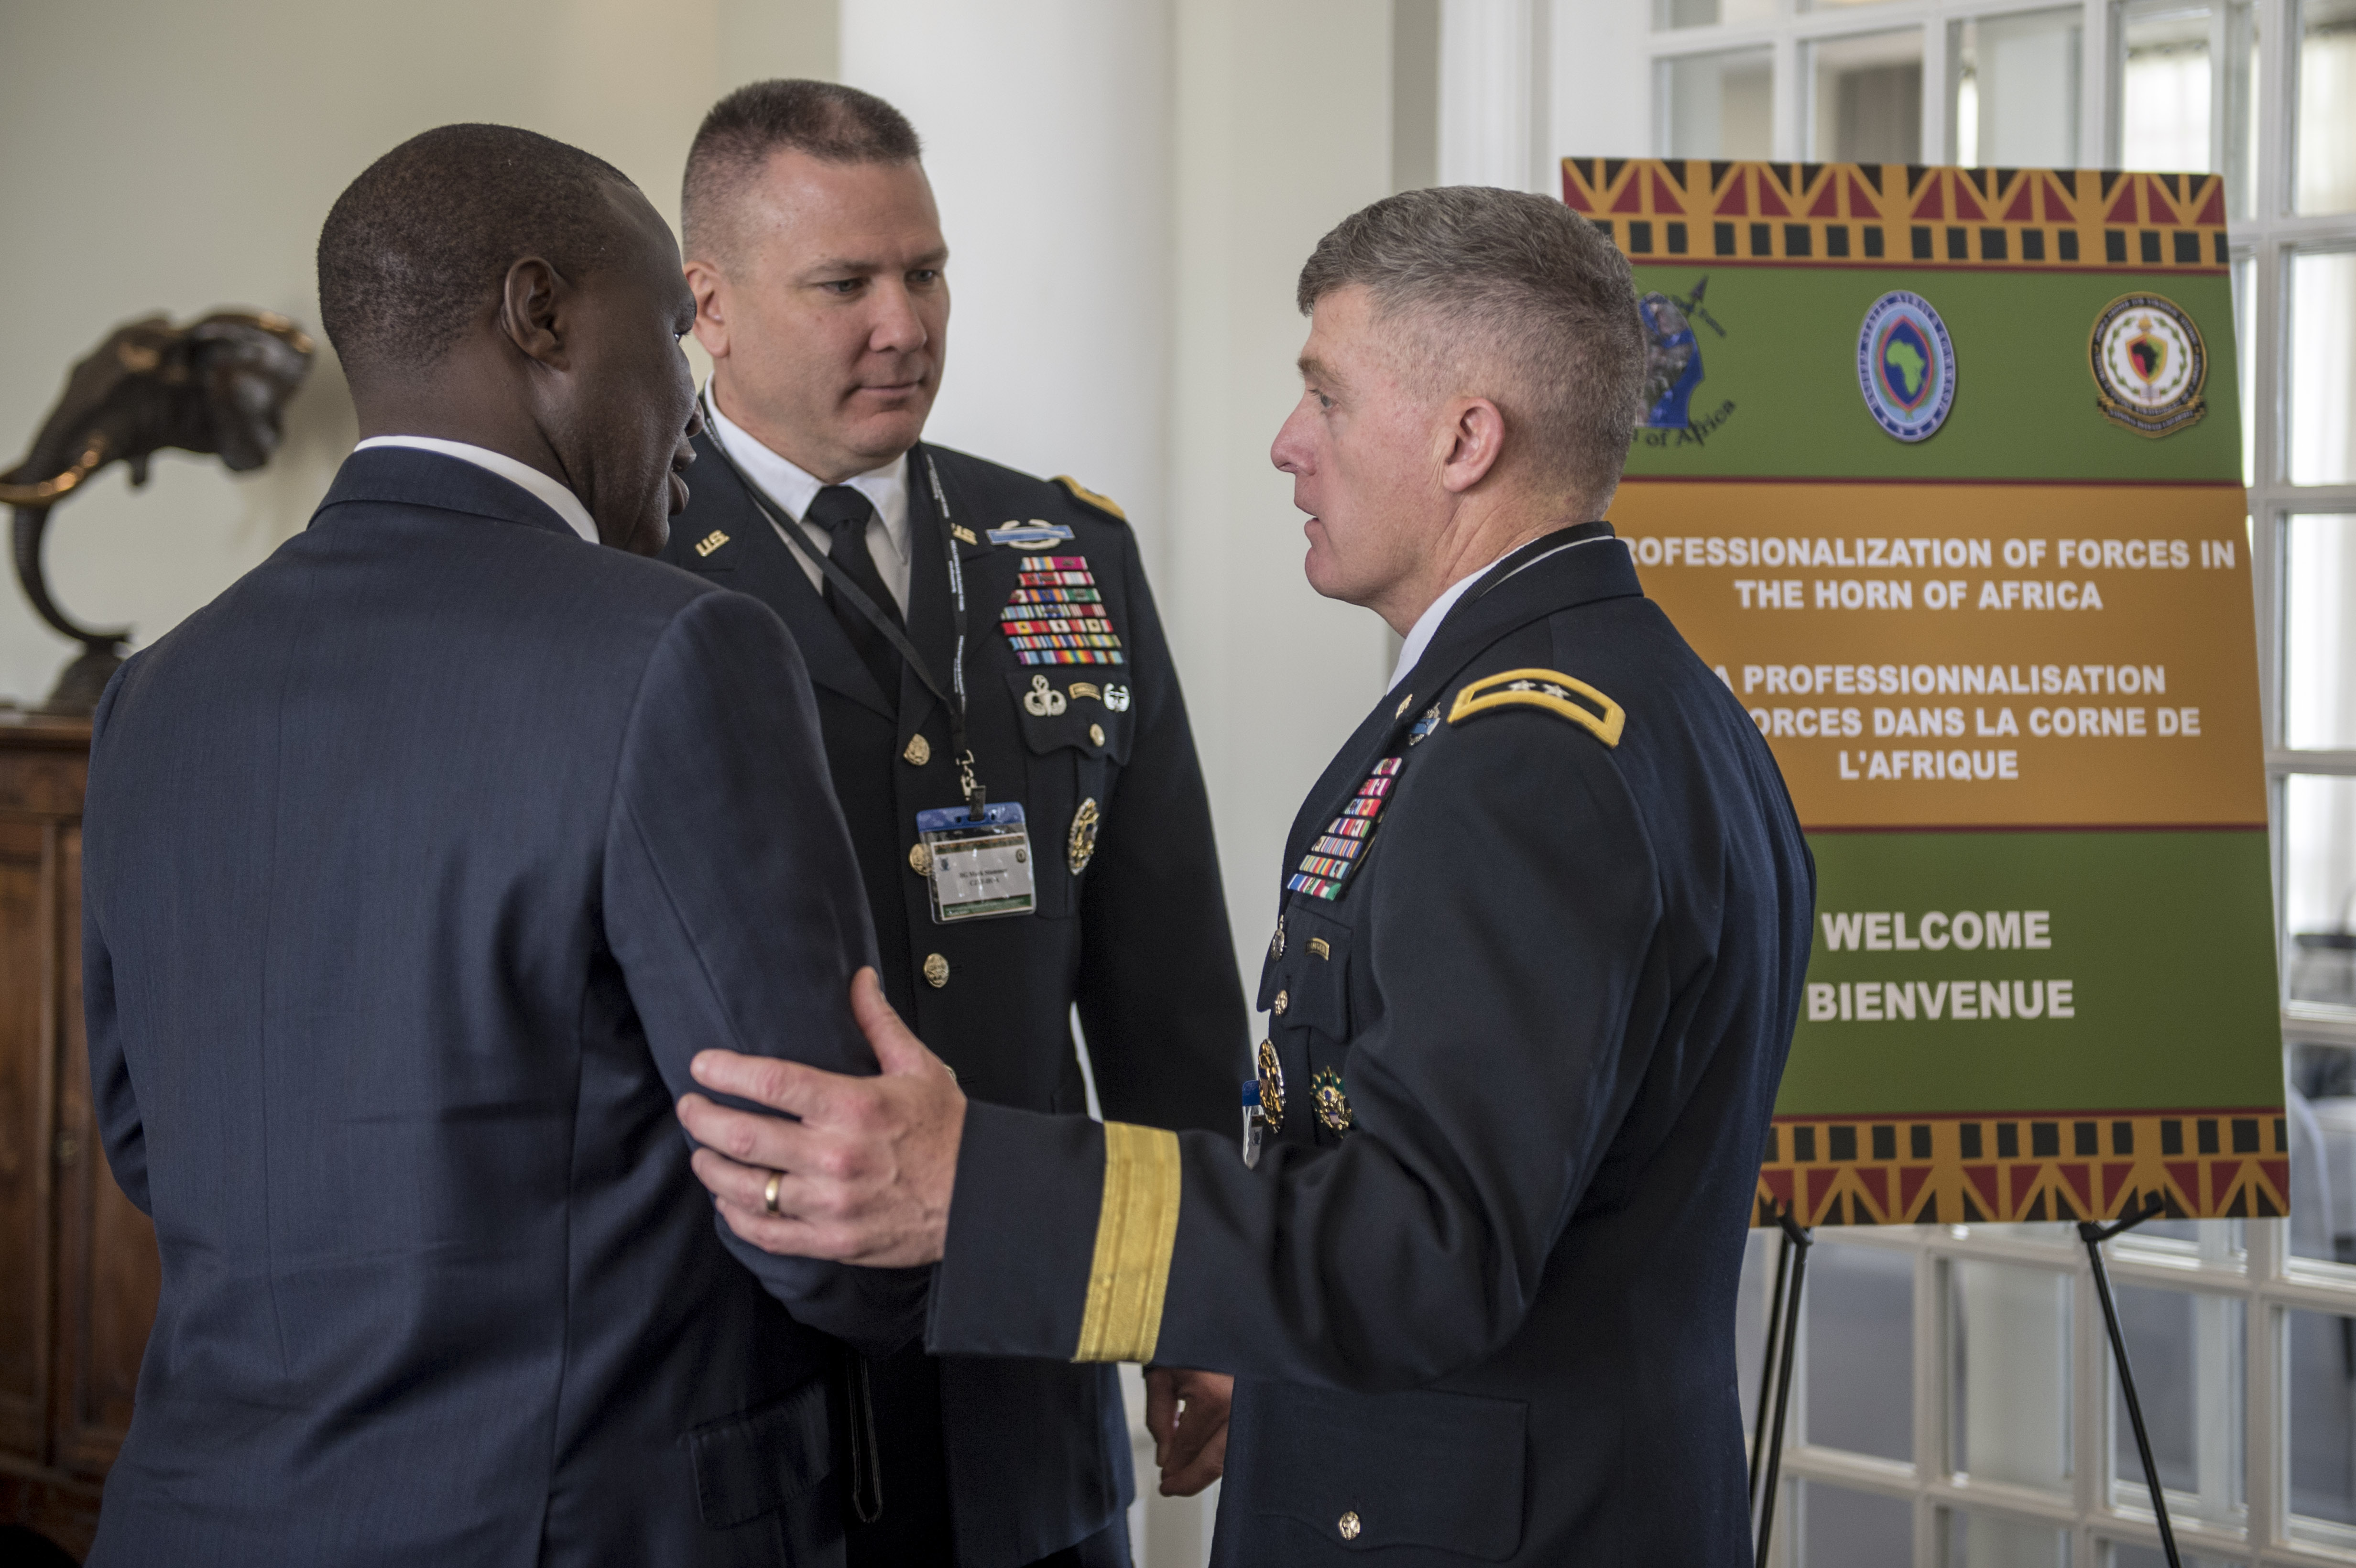 150408-F-QZ836-093 Kenya(April 08,2015)(From Right) Maj. Gen. Wayne W. Grigsby Jr., the former commander of Combined Joint Task Force Horn of Africa, introduces Maj. Gen Mark R. Stammer, CJTF-HOA commander, to an East African partner, during the Senior Leader Summit in Nairobi, Kenya, April 8, 2015.  (U.S. Air Force photo by Staff Sgt. Carlin Leslie)